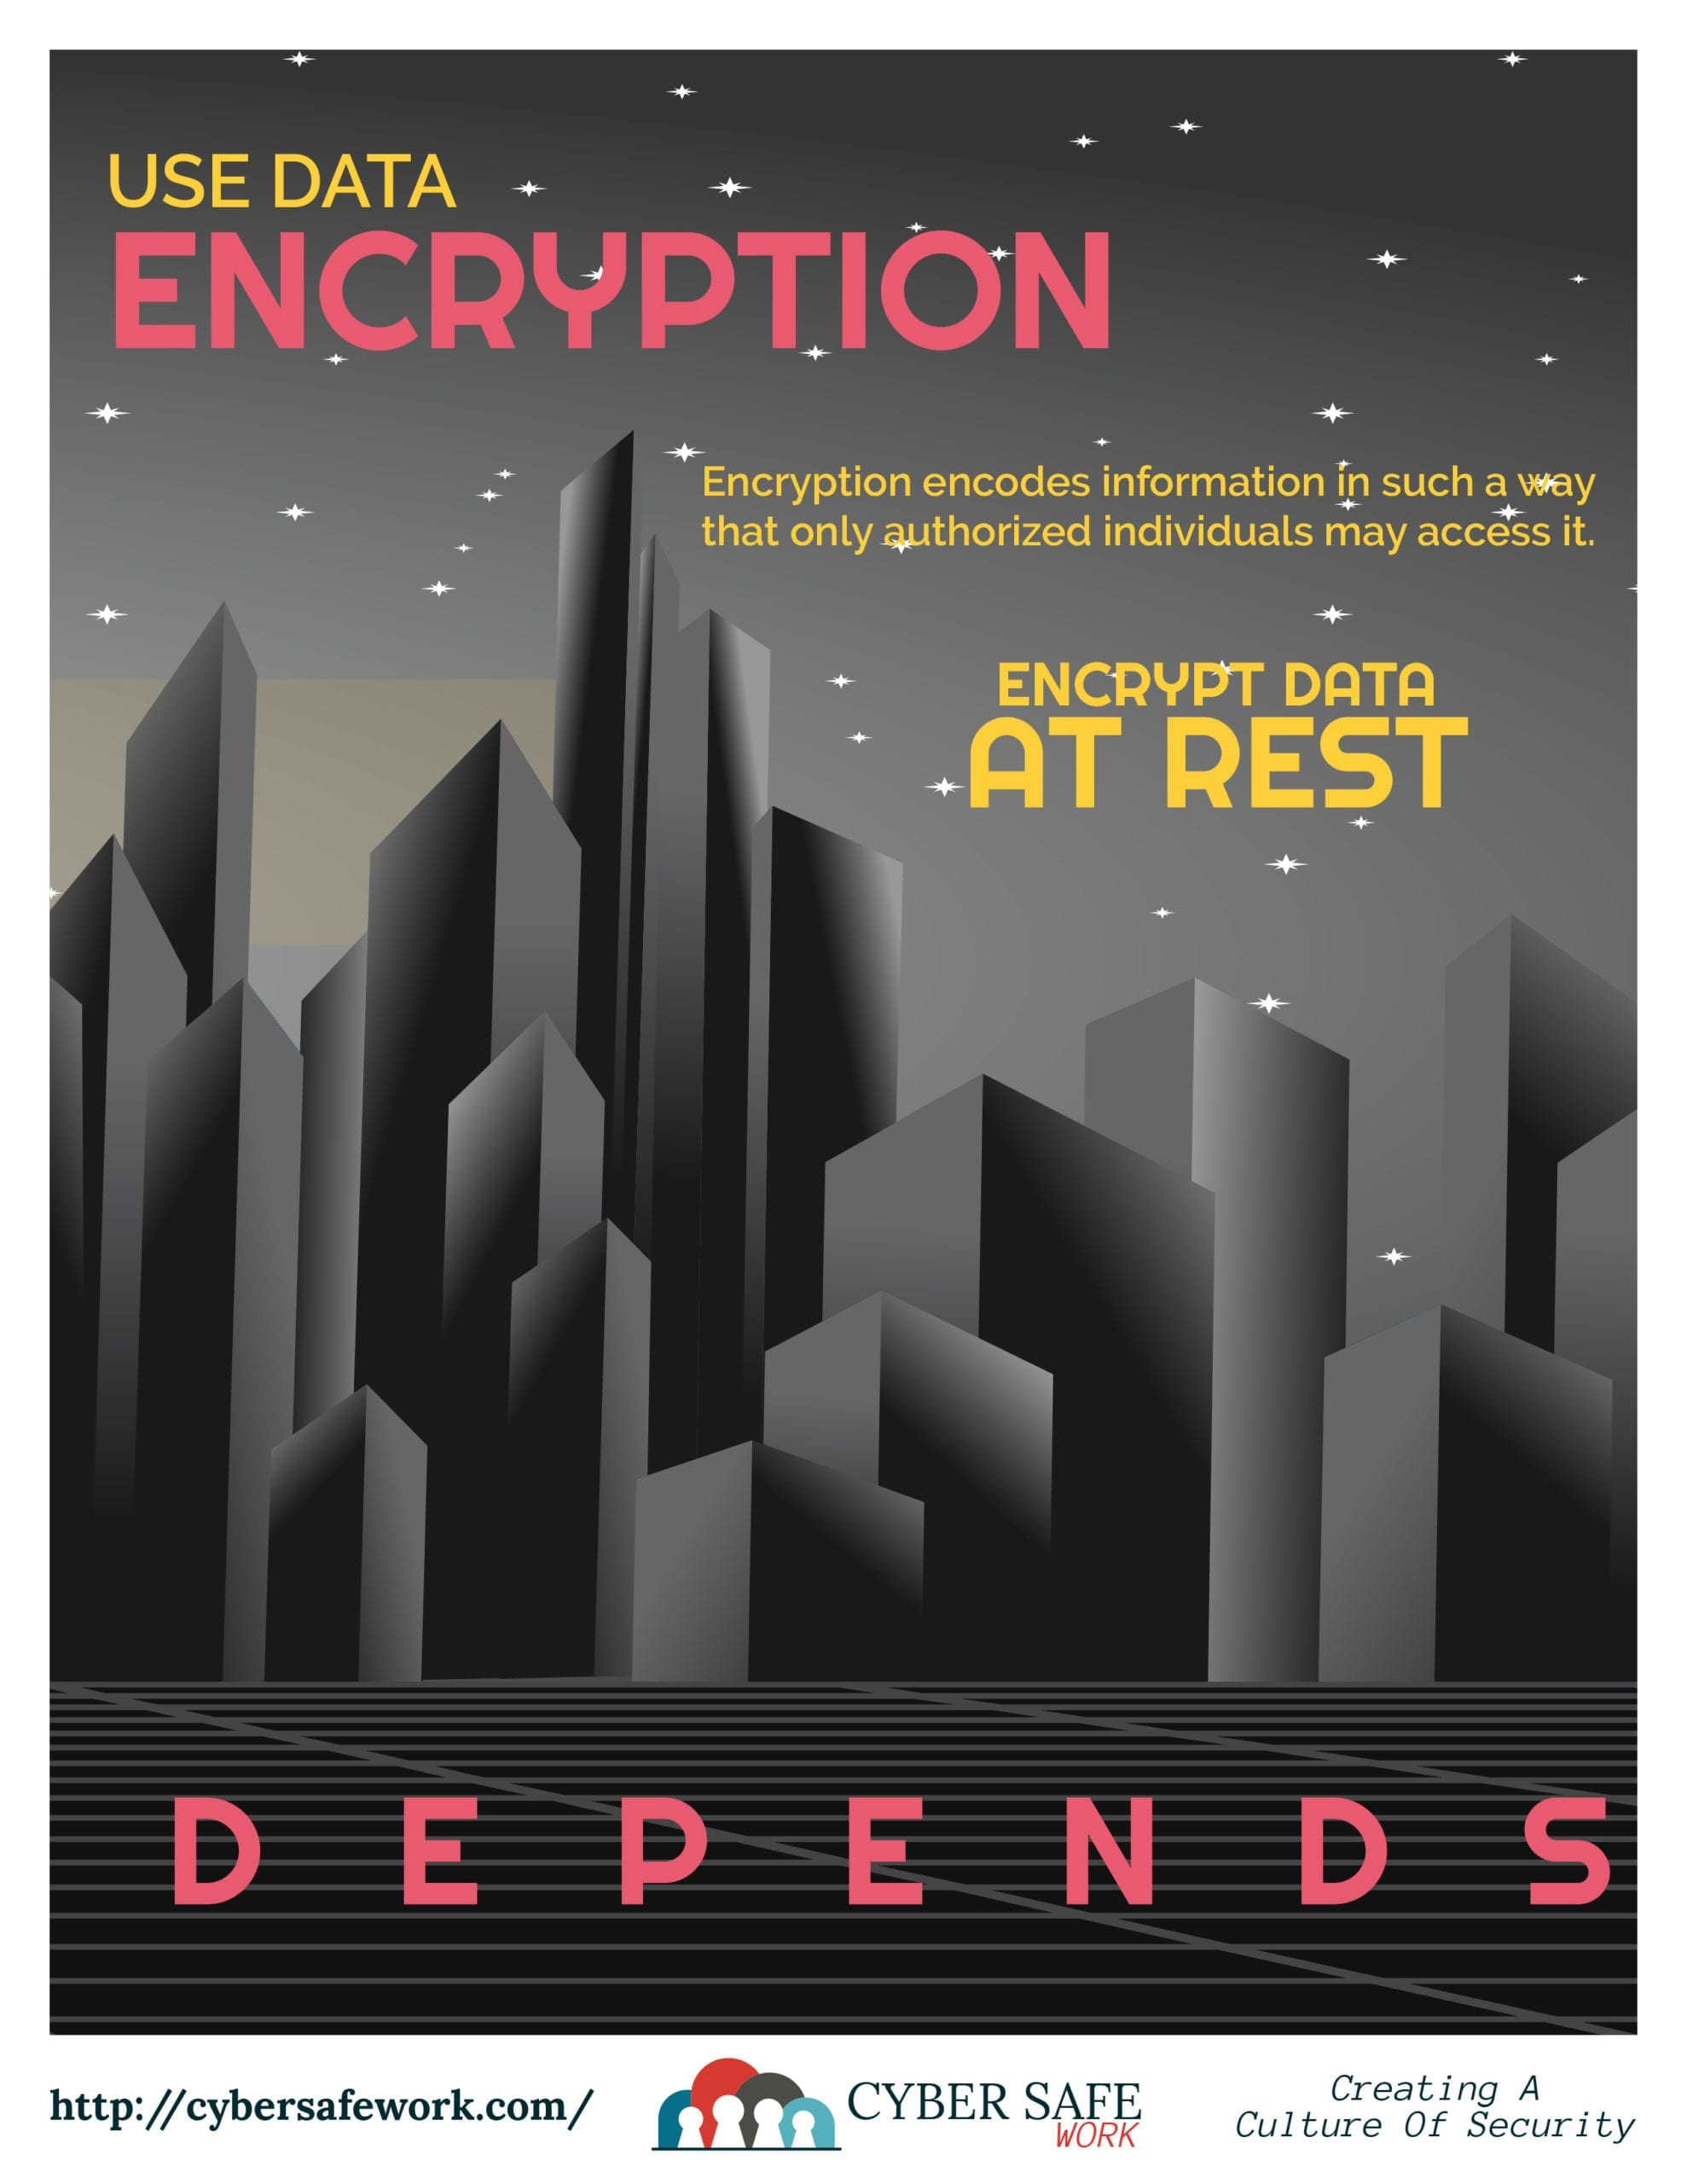 October 2019 cybersecurity poster - backup sensitive information